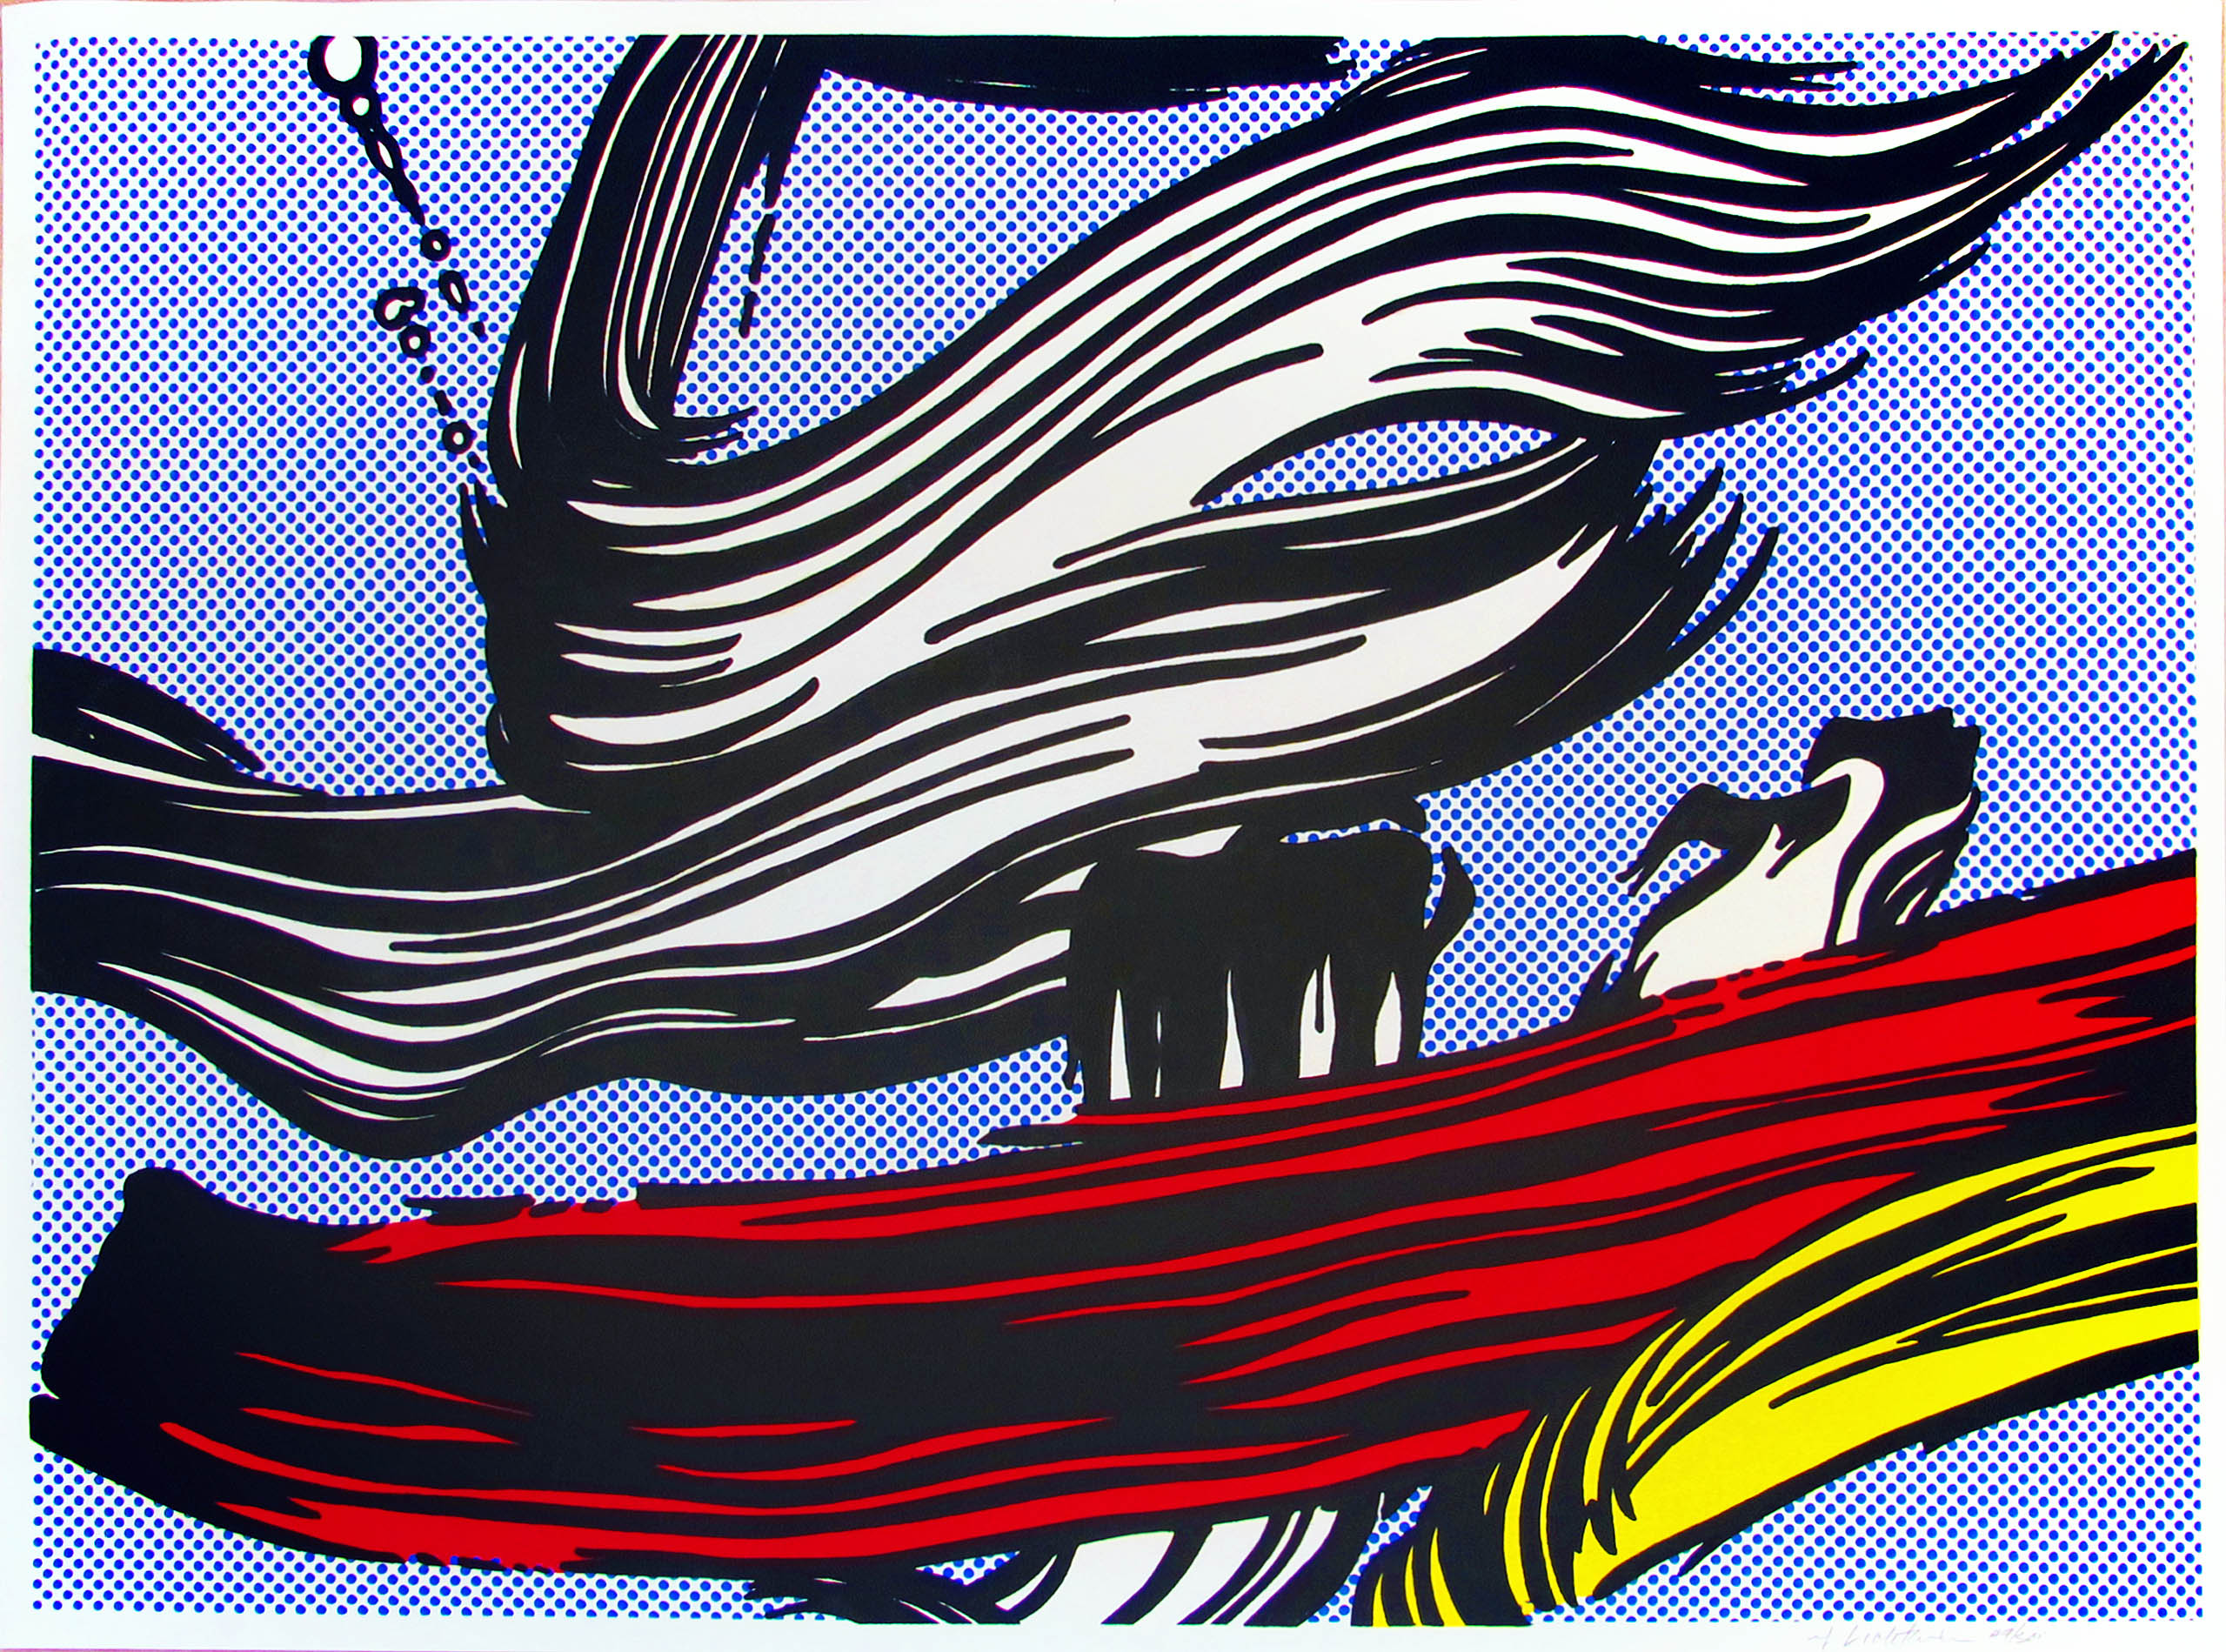 Roy Lichtenstein | Brushstrokes | 1967 | Image of Artists' work.